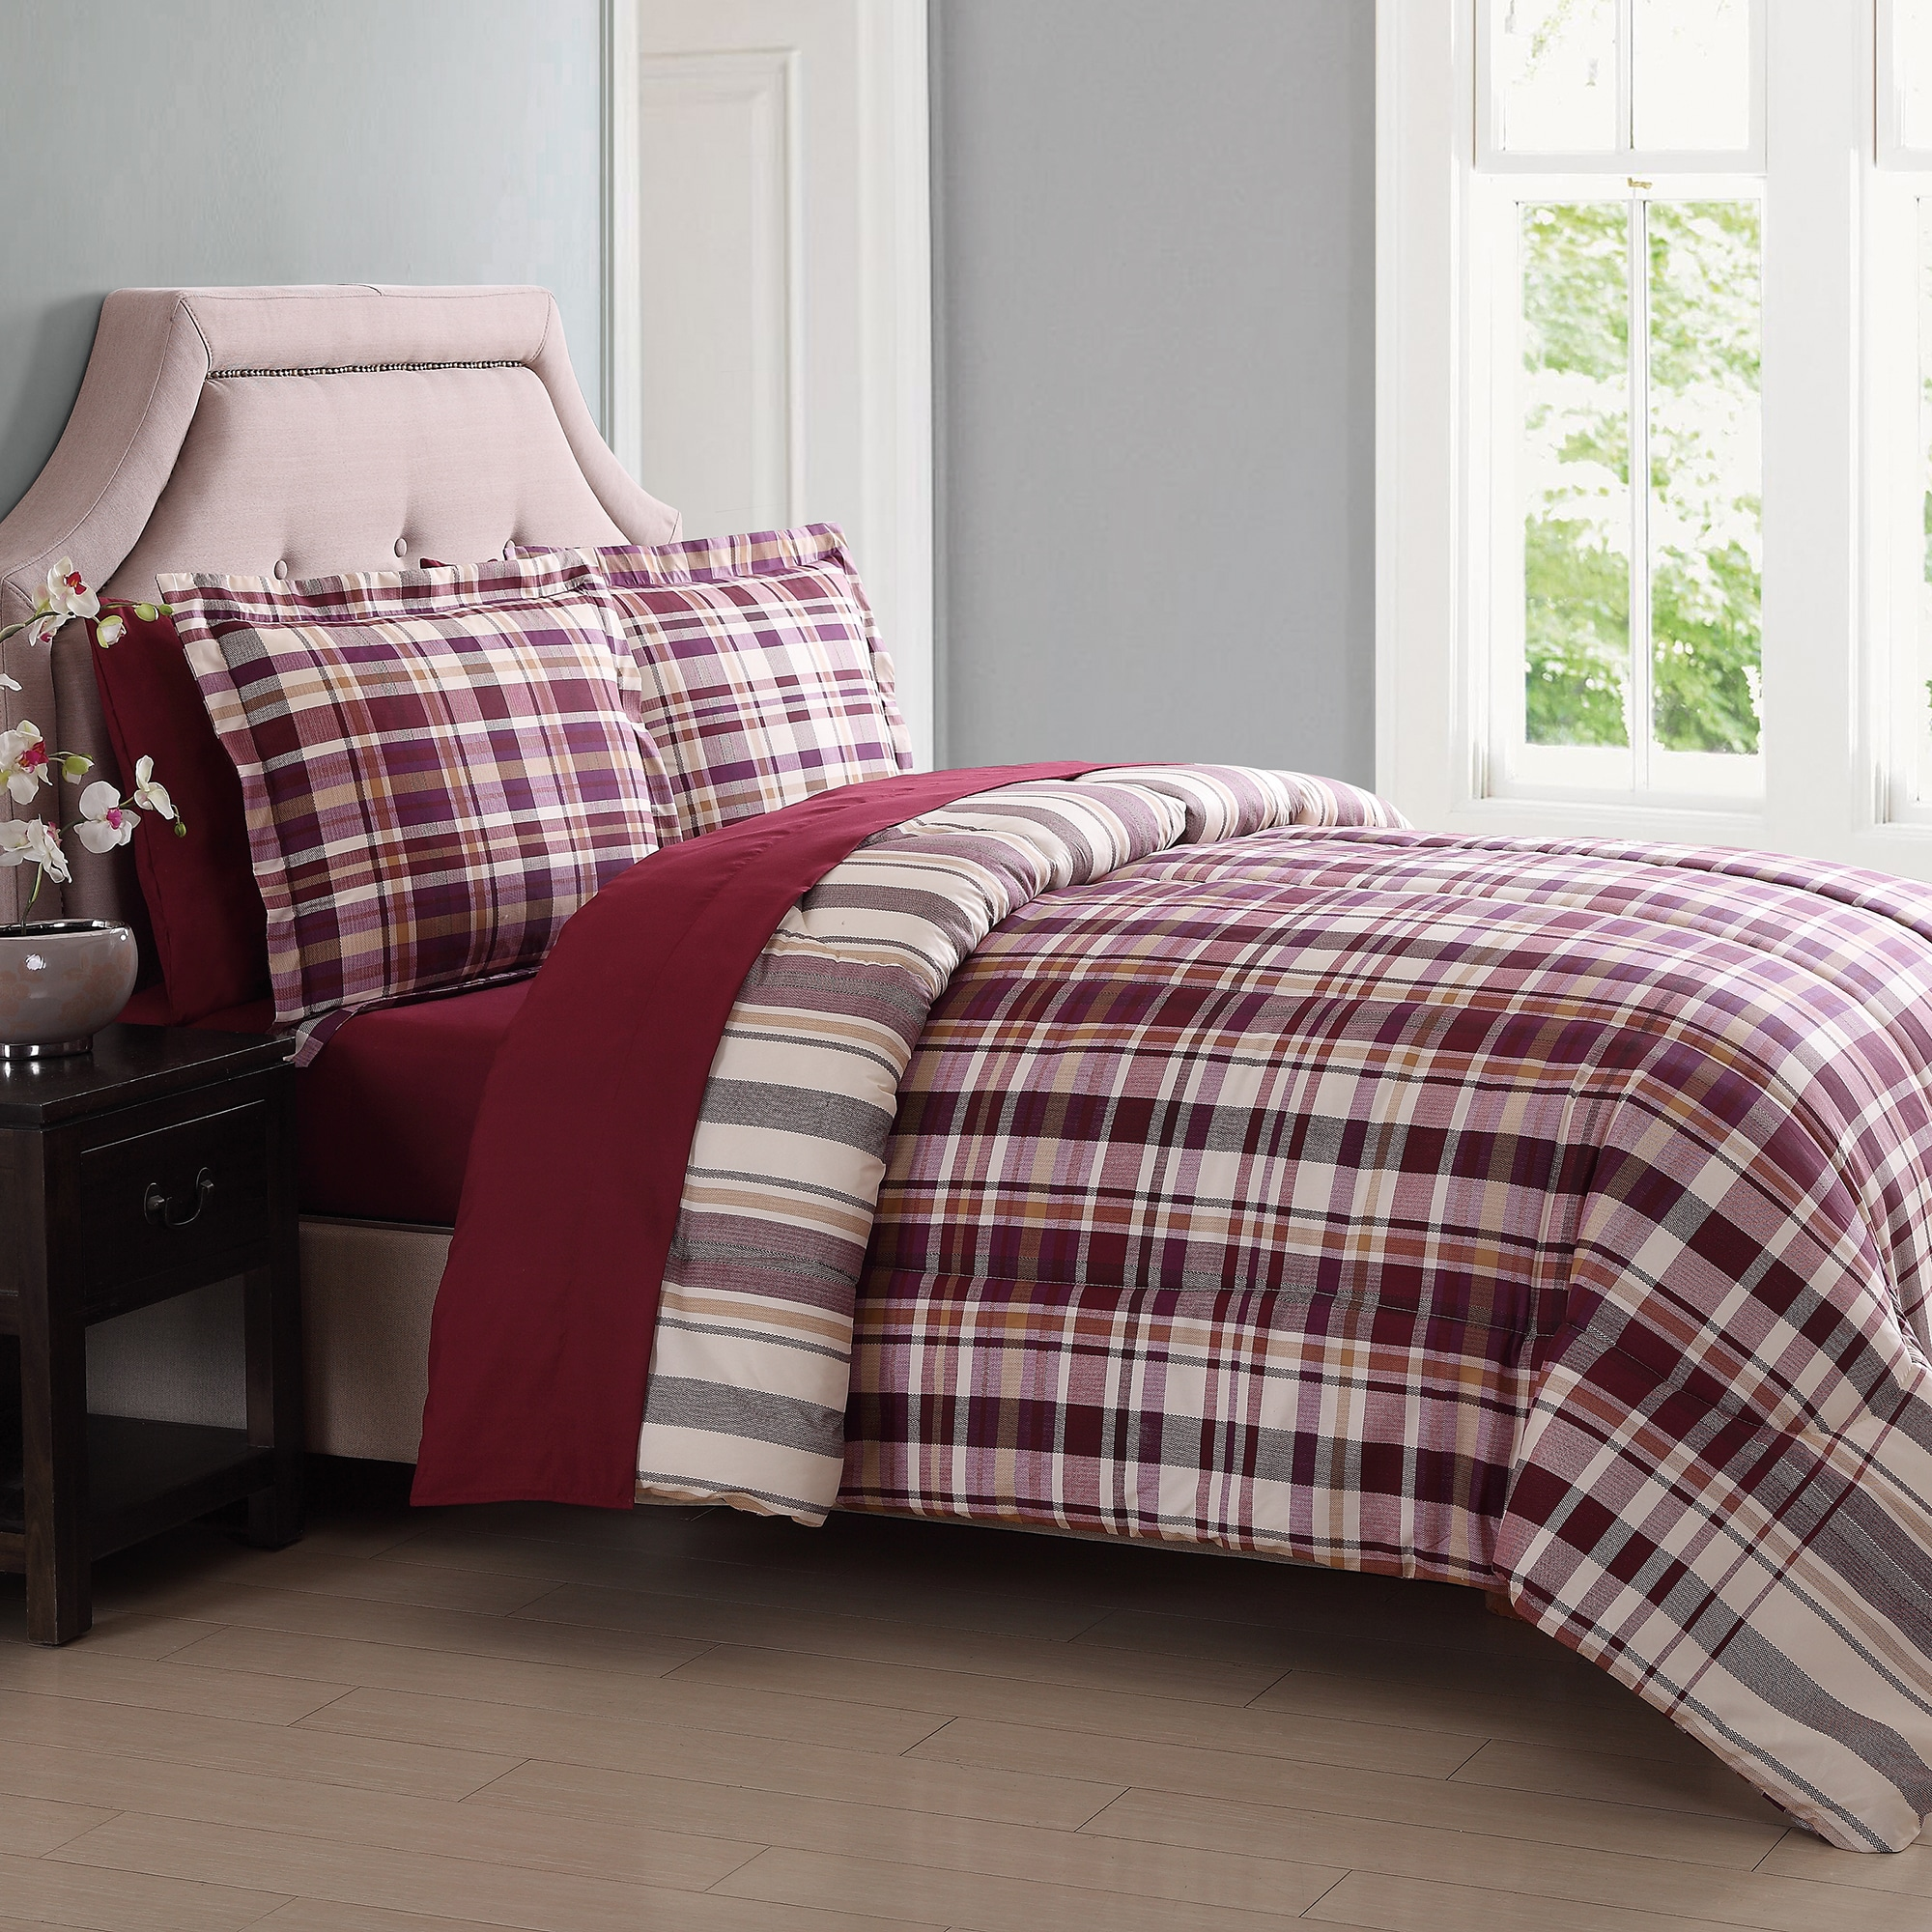 Shop London Fog Cornwall Plaid 7 Piece Bed In A Bag Free Shipping